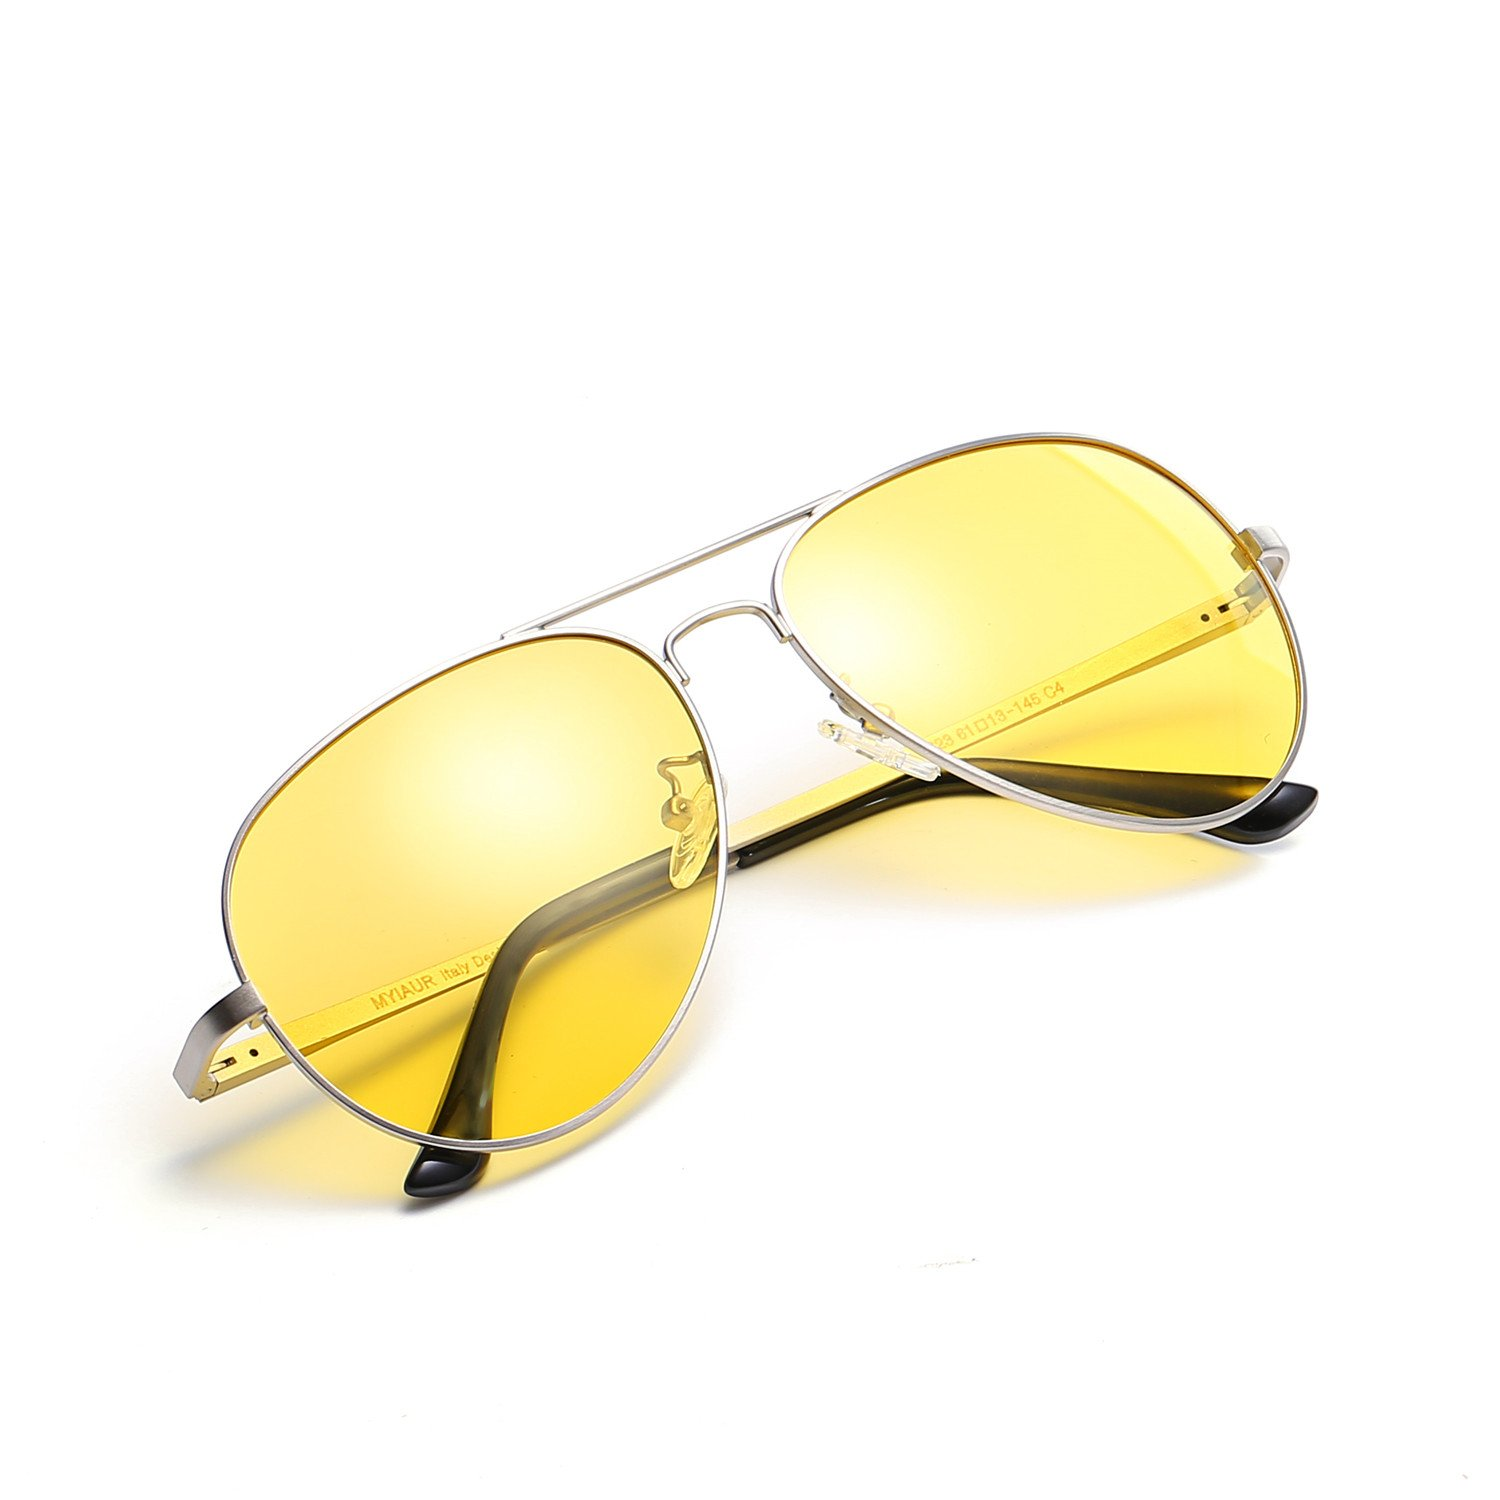 Myiaur Night Vision Glasses for Driving, HD Vision Yellow Glasses, for Fashion Men & Women - Polarized Lens Anti Glare Yellow Aviator Anti-glare Lens